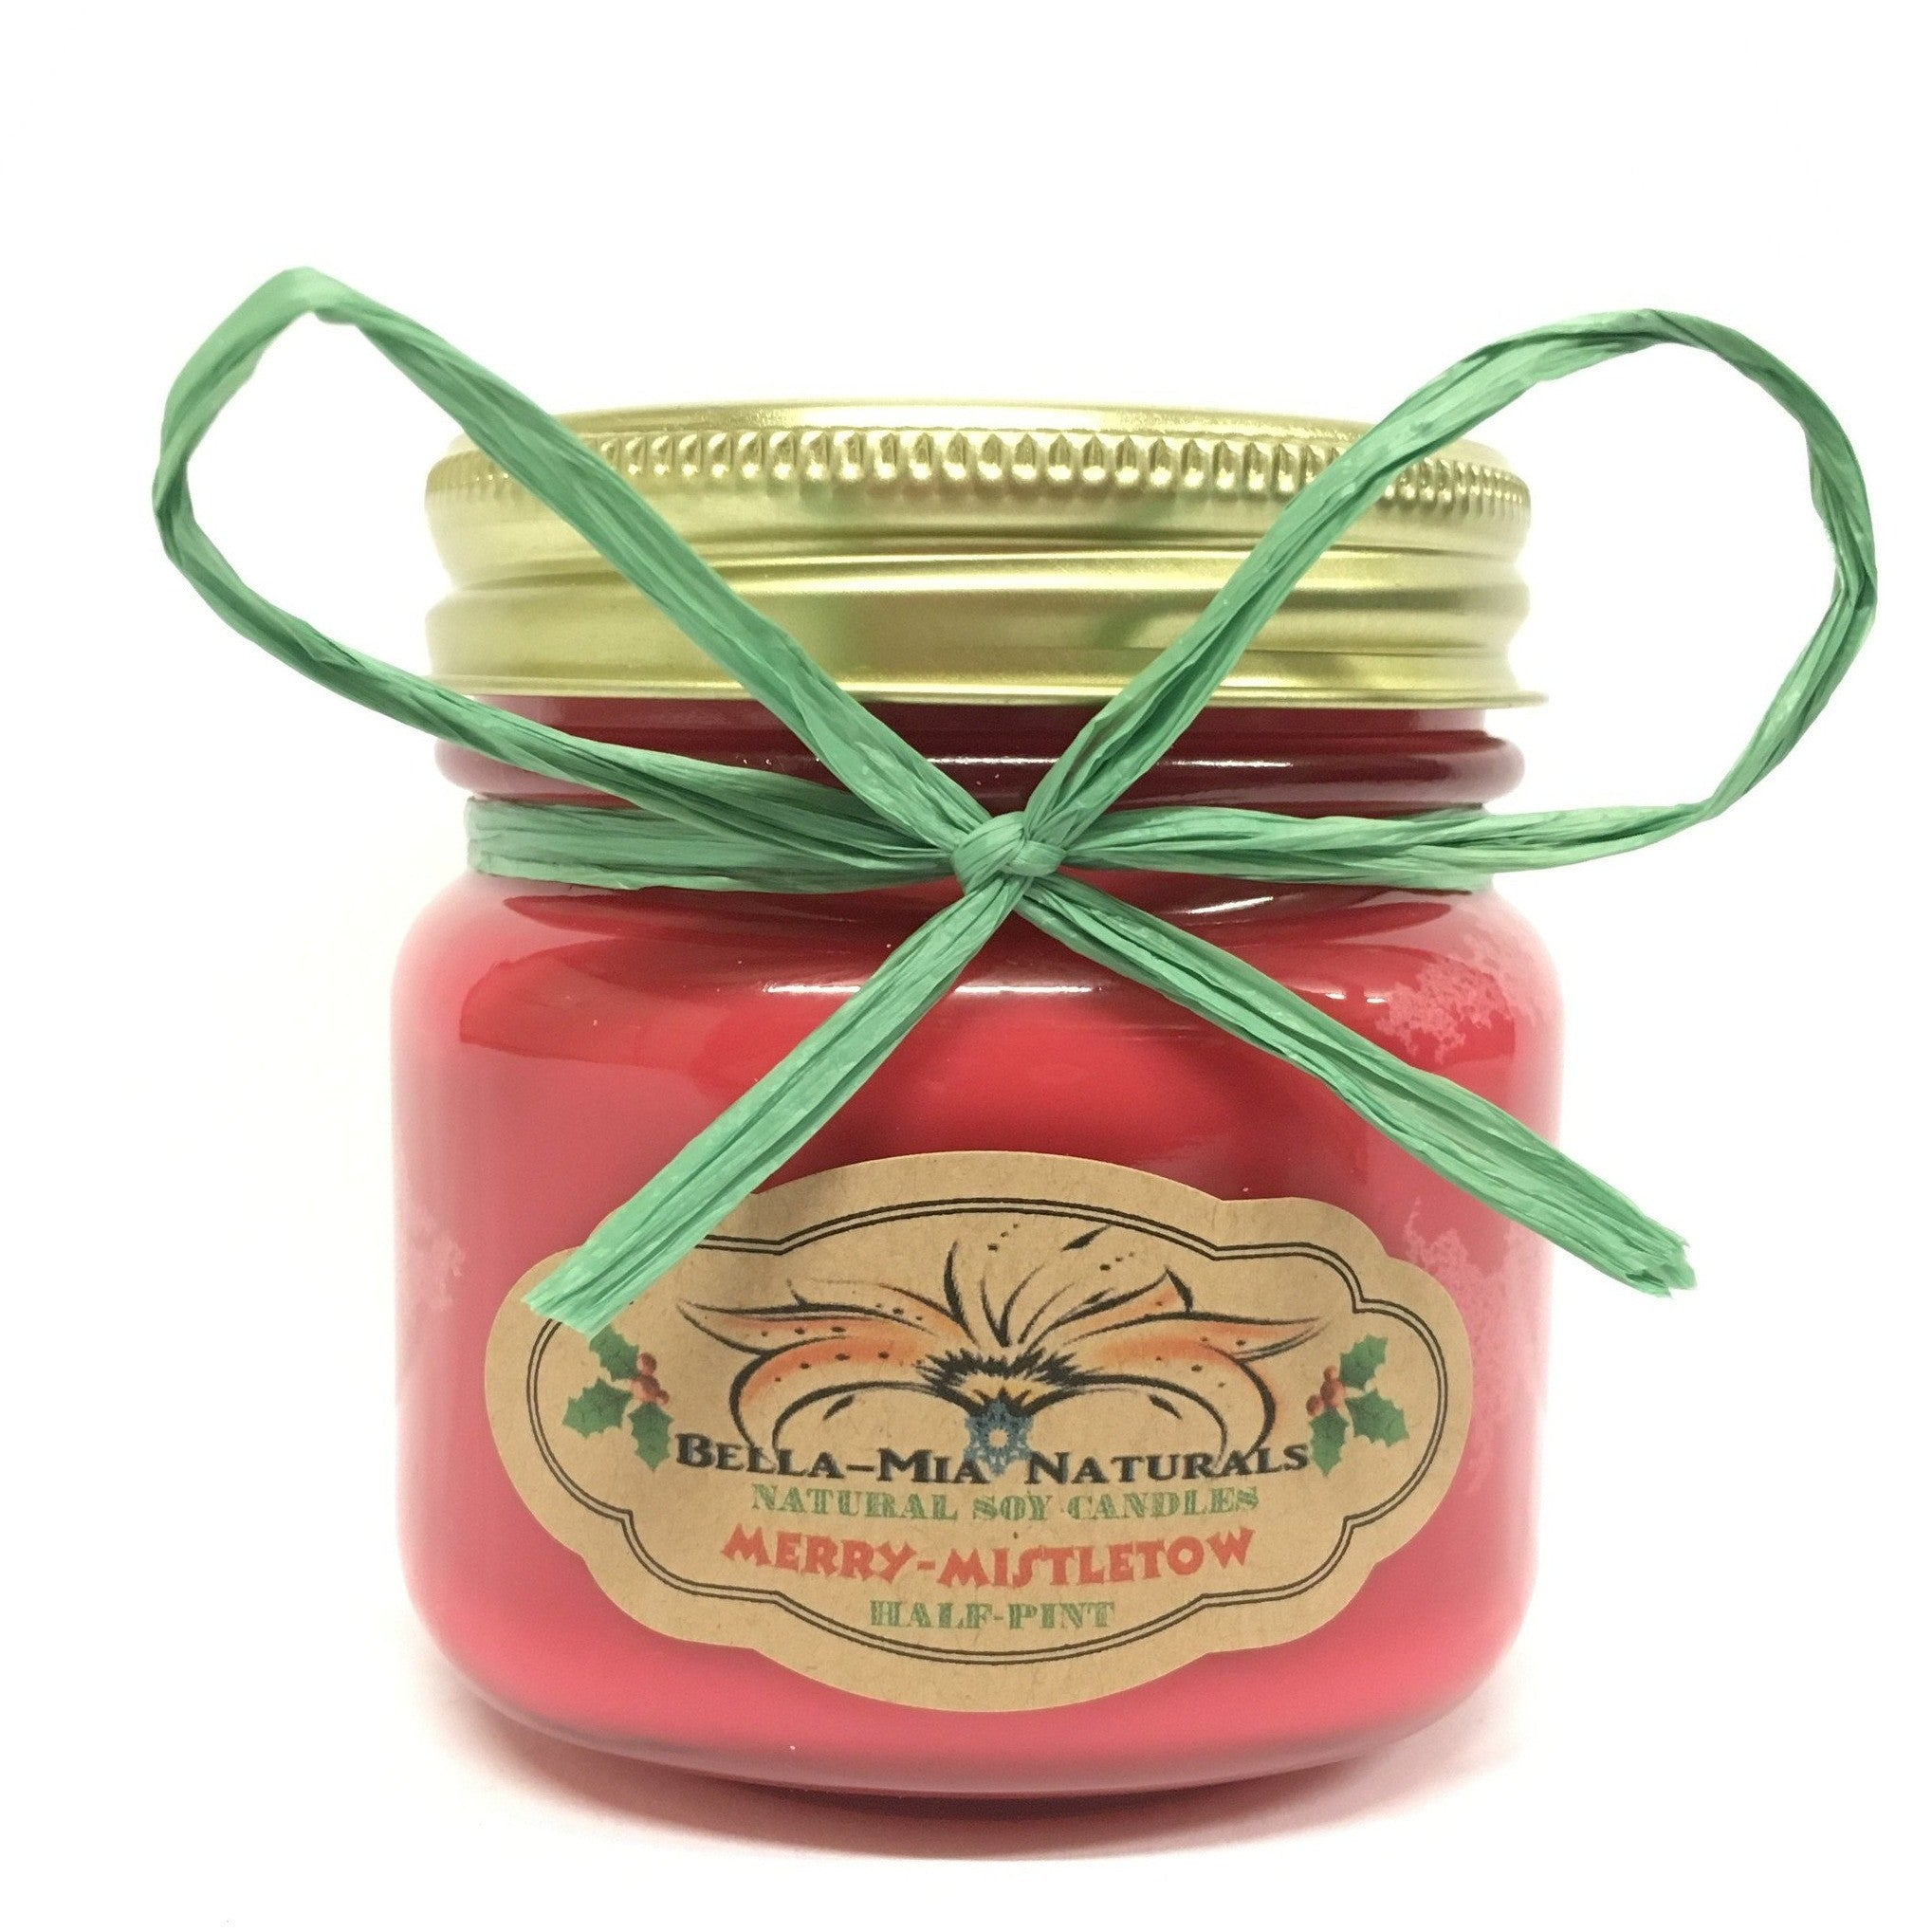 Merry-Mistletoe Natural Hand Poured Soy Candles - Half-Pint - Bella-Mia Naturals All Natural Soy Candles & Lip Balms - 3